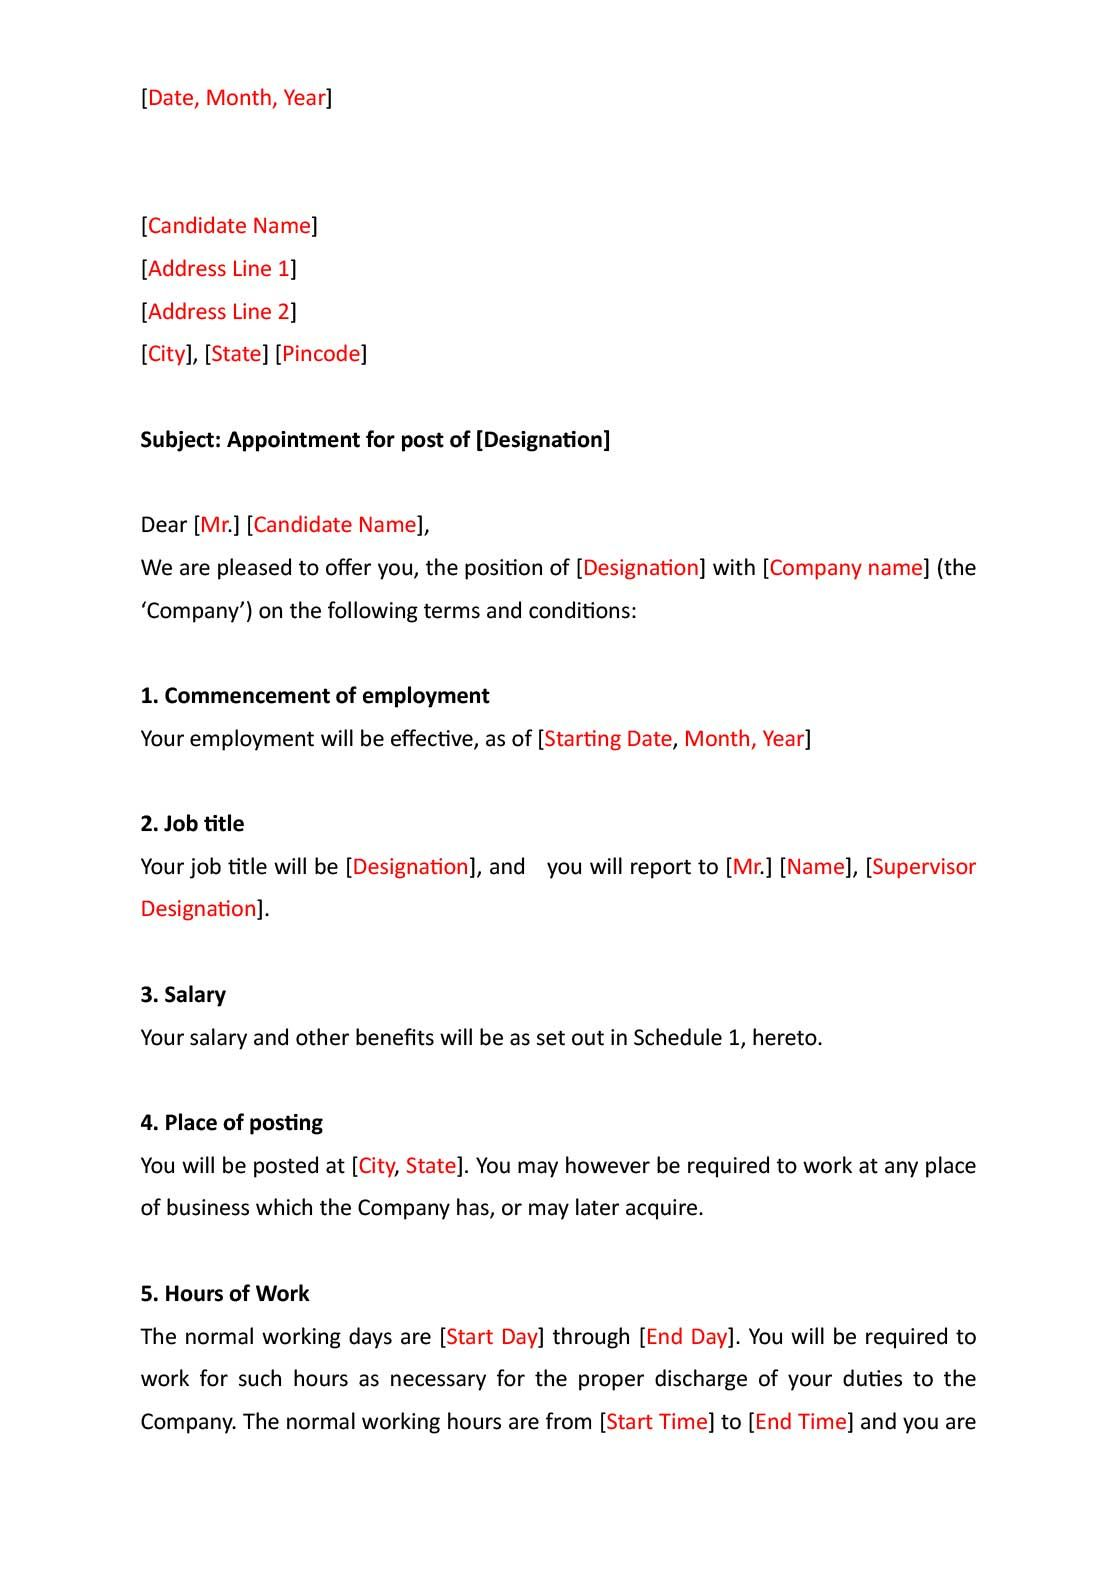 ngo appointment letter format hindi template doc job offer